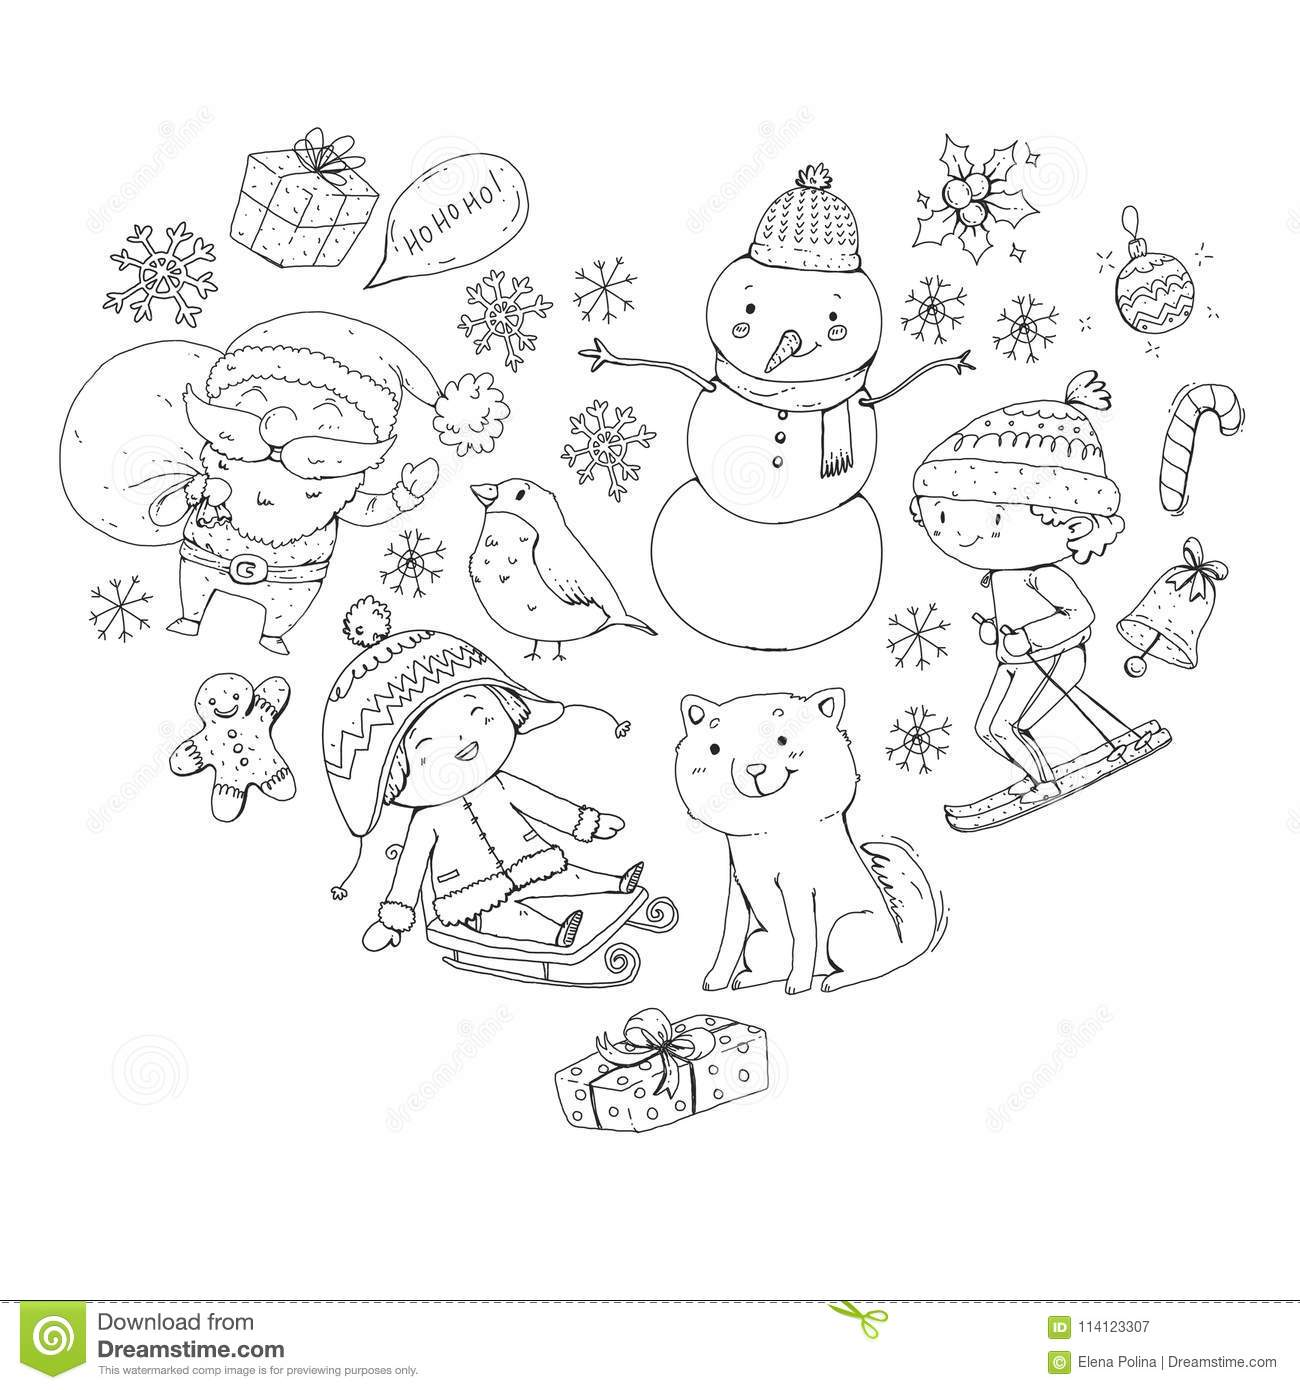 Merry Christmas Celebration With Children Kids Drawing Illustration With Ski Gifts Santa Claus Snowman Boys And Stock Vector Illustration Of Board Drawing 114123307